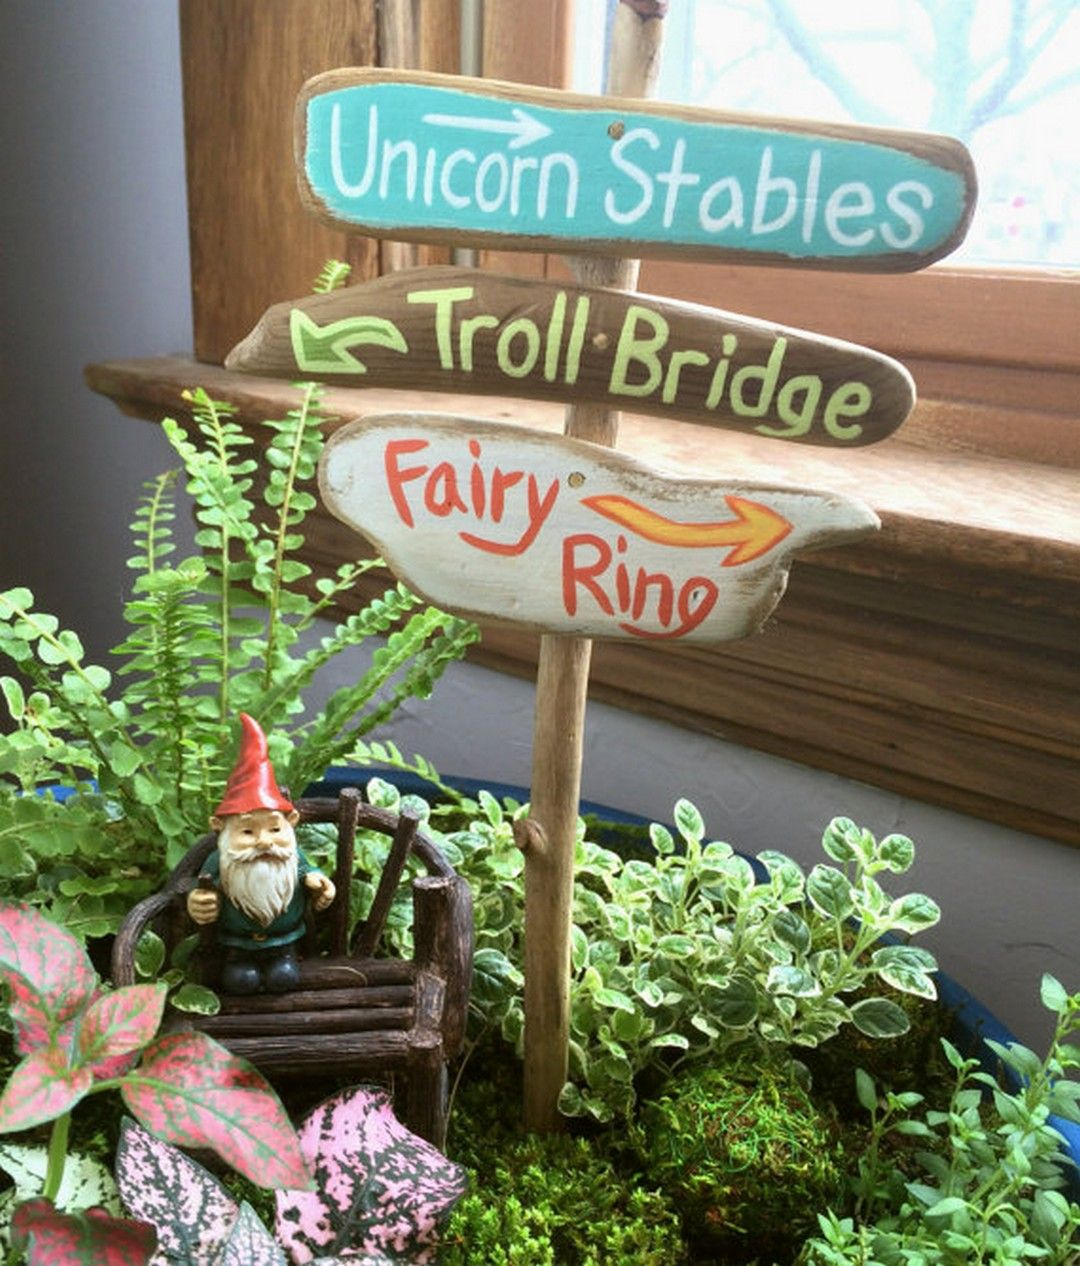 Merveilleux 50+ Magical And Best Plants DIY Fairy Garden Ideas